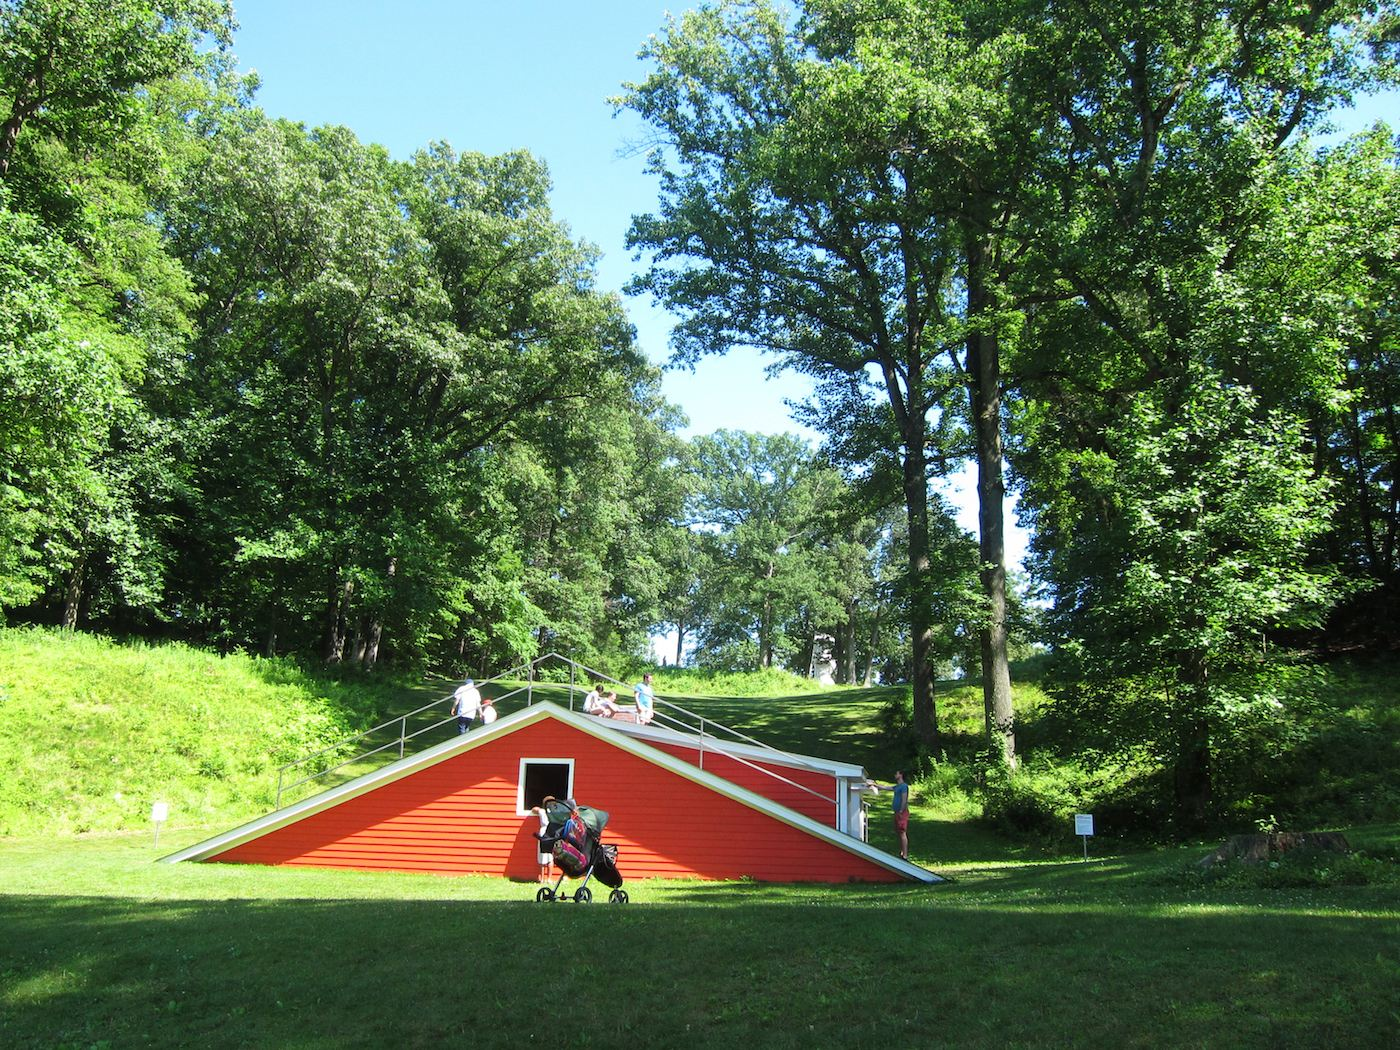 Heather Hart – a Half-Buried Roof Shelters Oral Histories